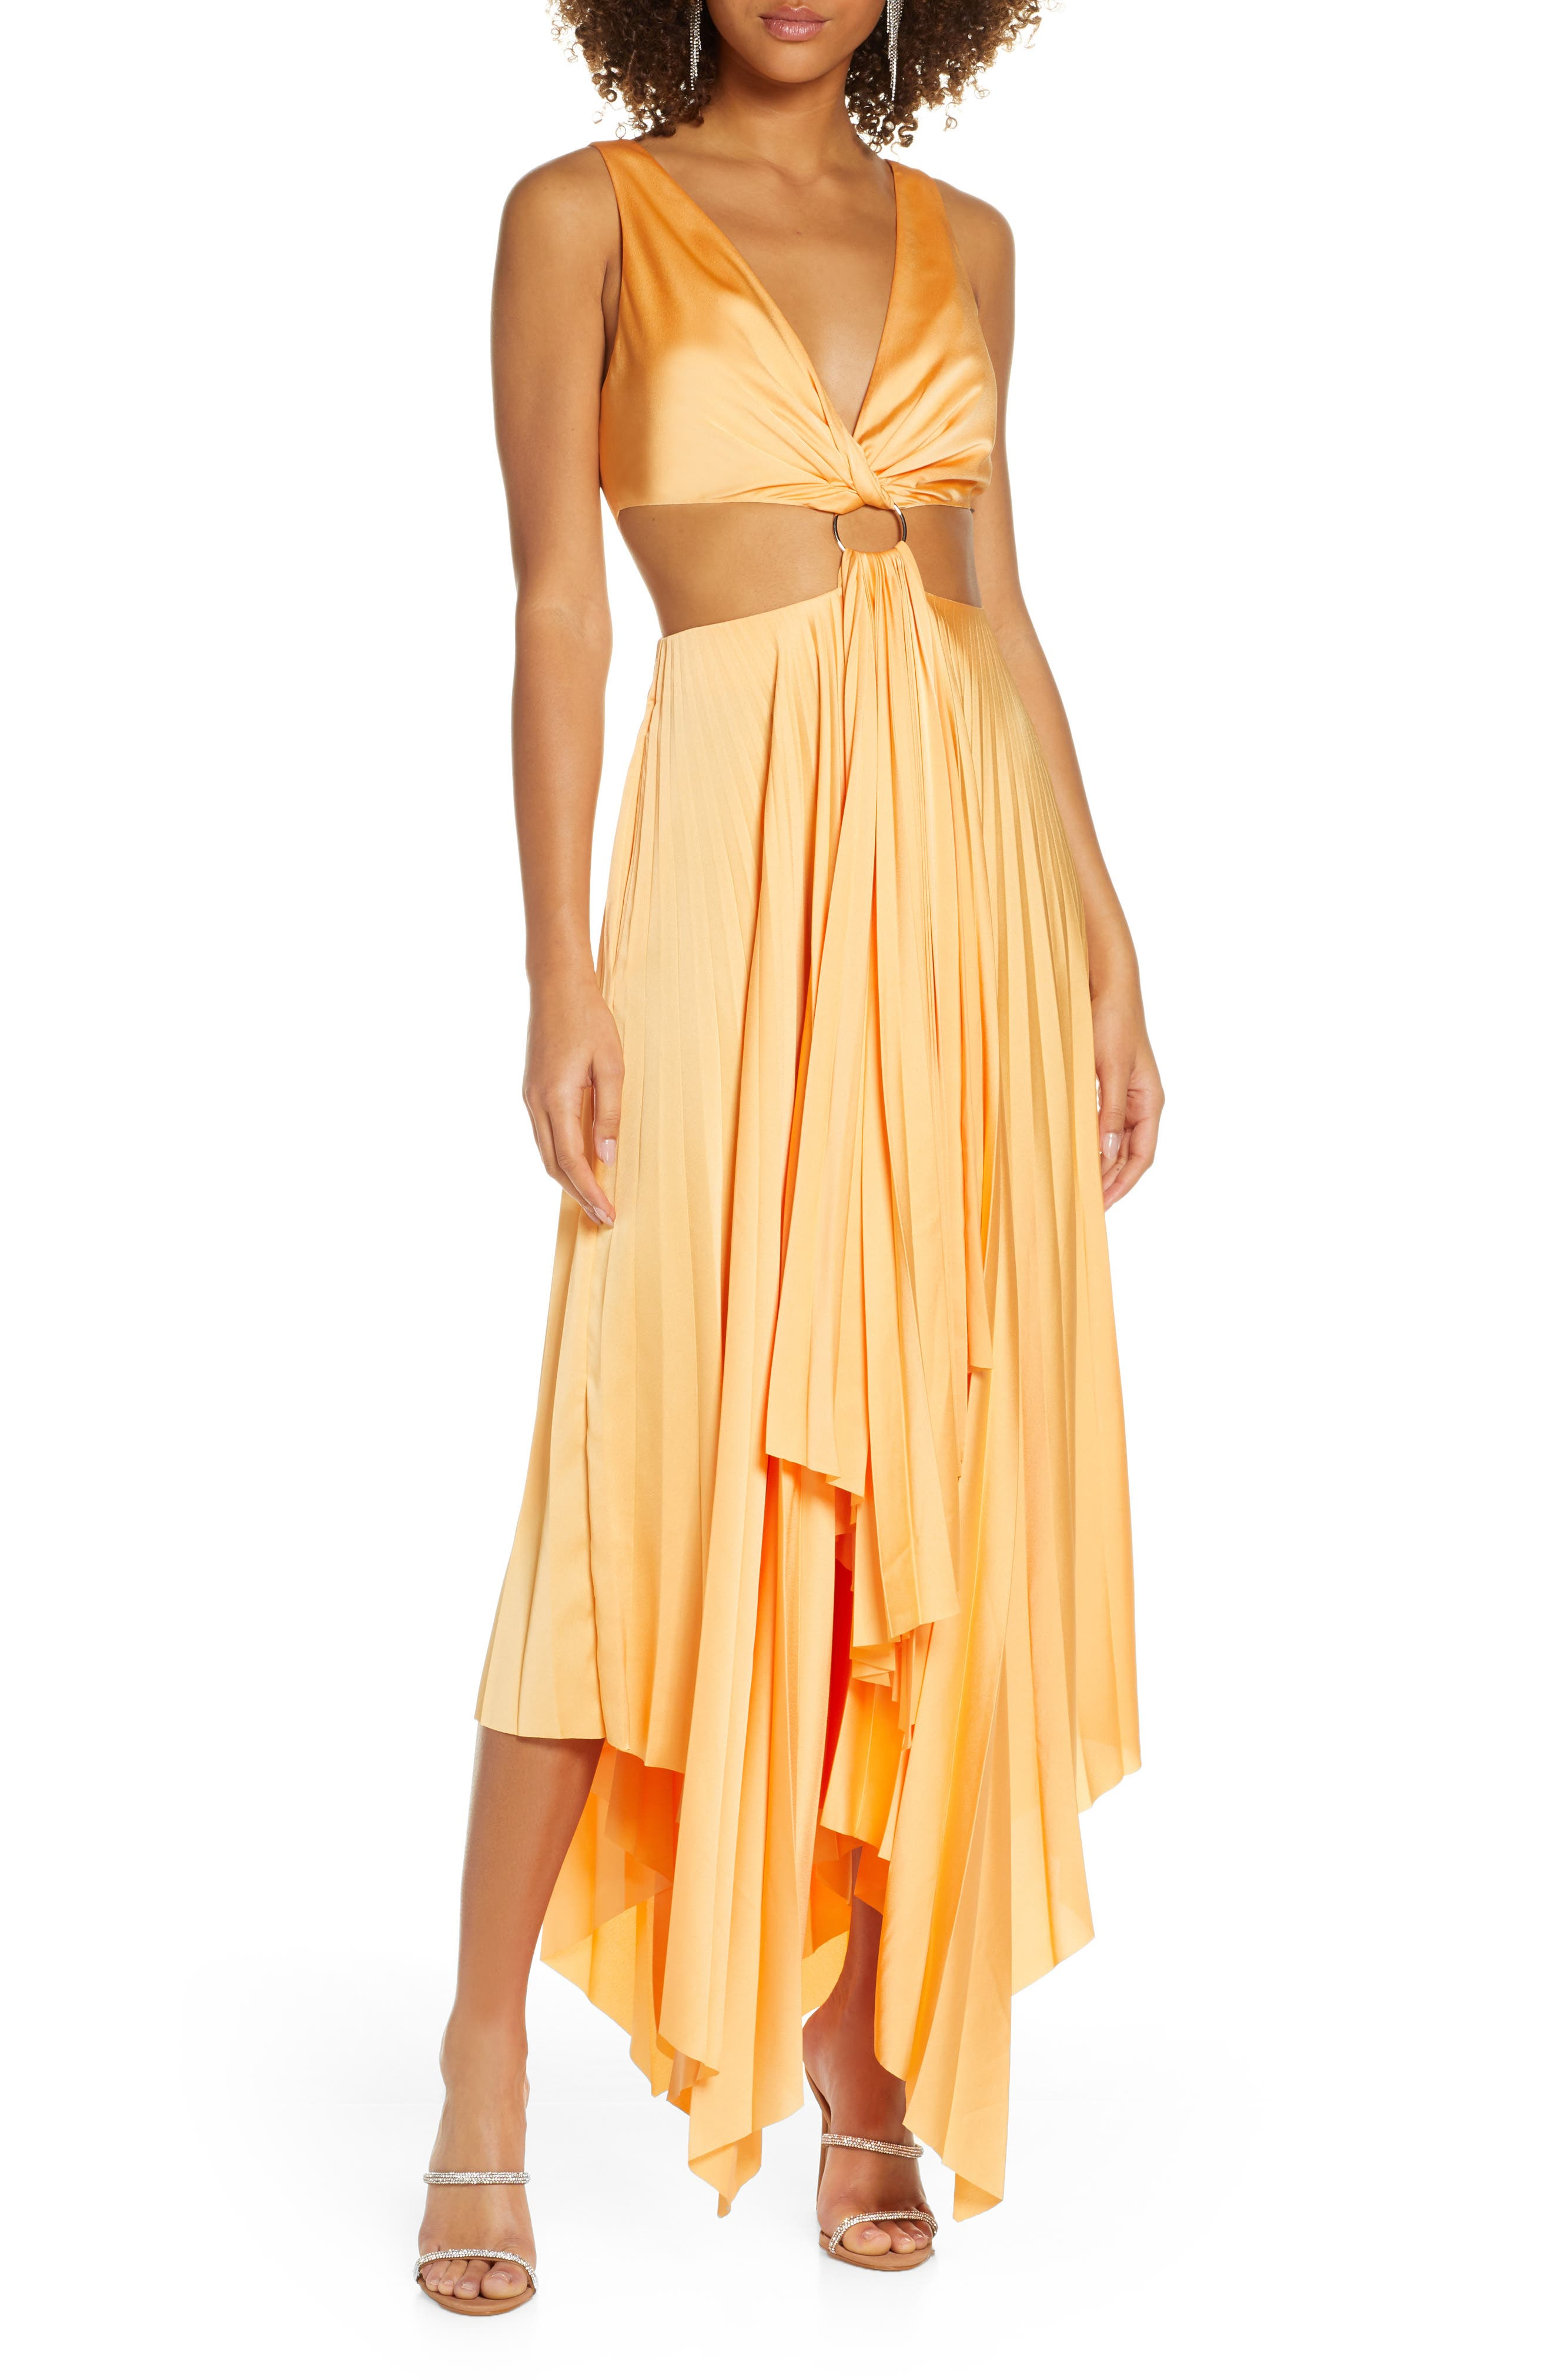 70s Prom, Formal, Evening, Party Dresses Womens Significant Other Eden Cutout Satin Maxi Dress $162.00 AT vintagedancer.com